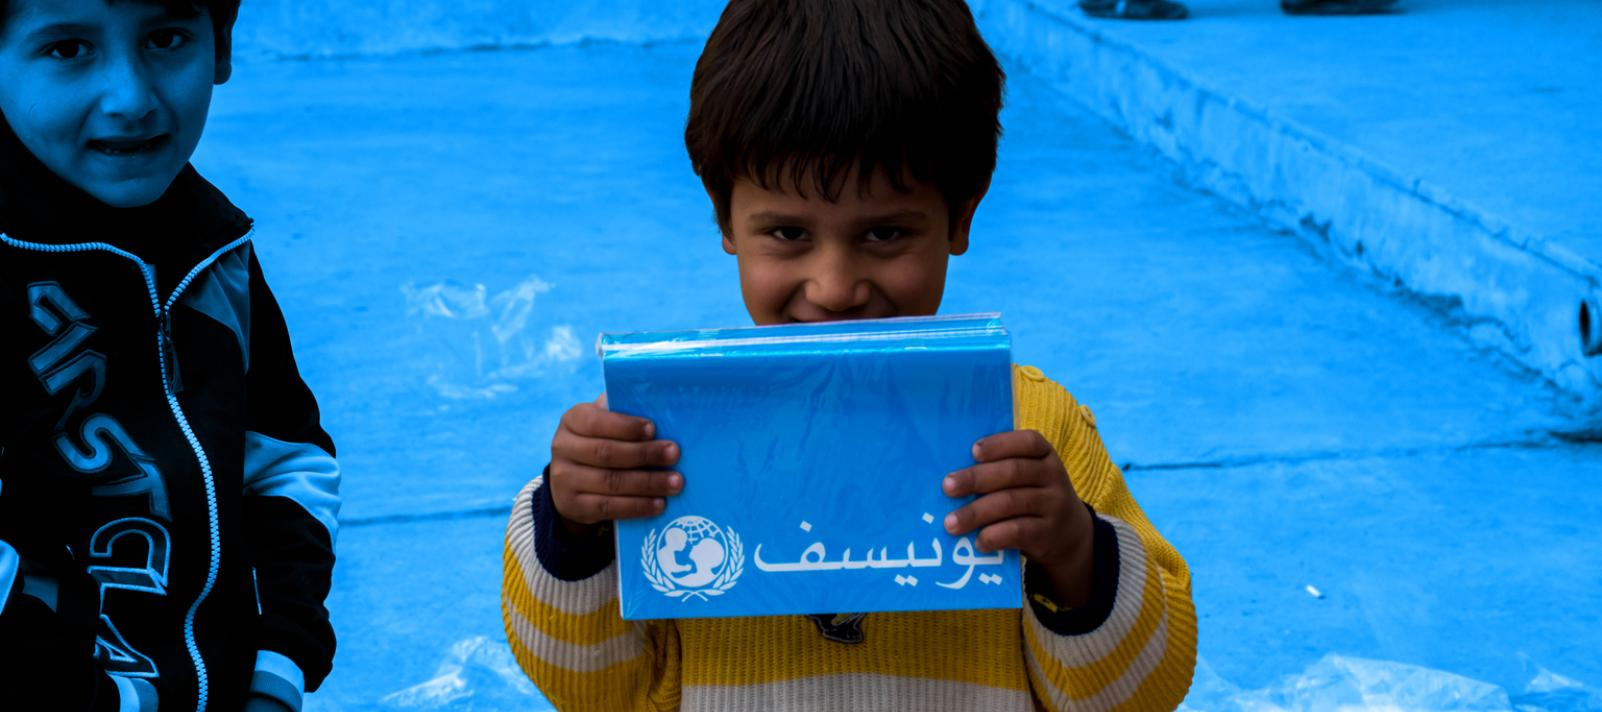 A child holding a UNICEF branded notebook